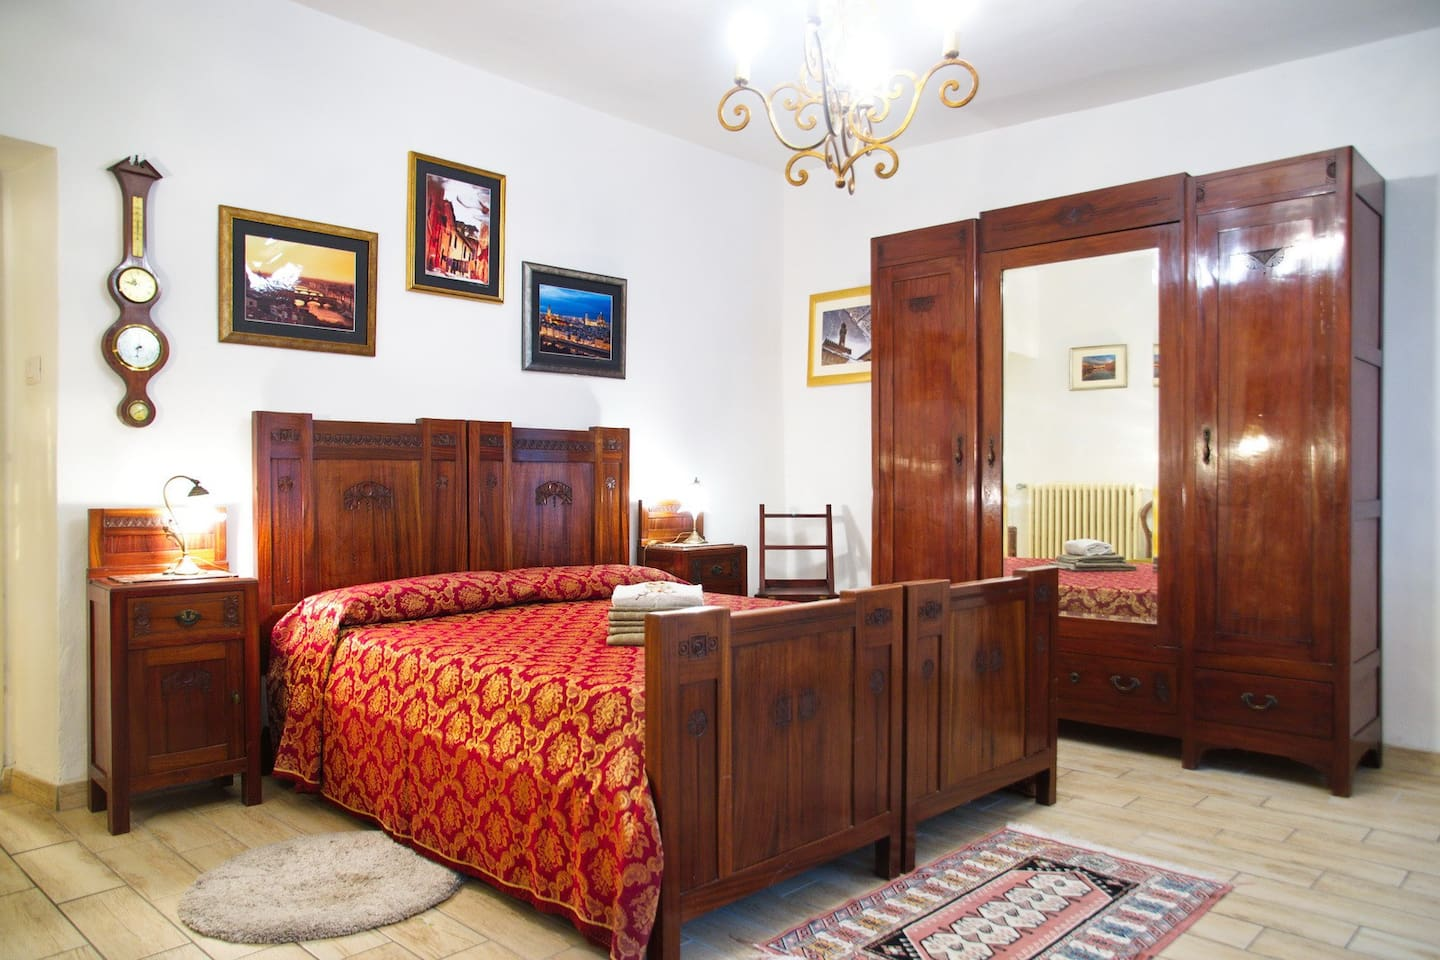 Main bedroom: Art Deco furniture with nice carved decorations, bought by my paternal grandparents  for their wedding in 1921